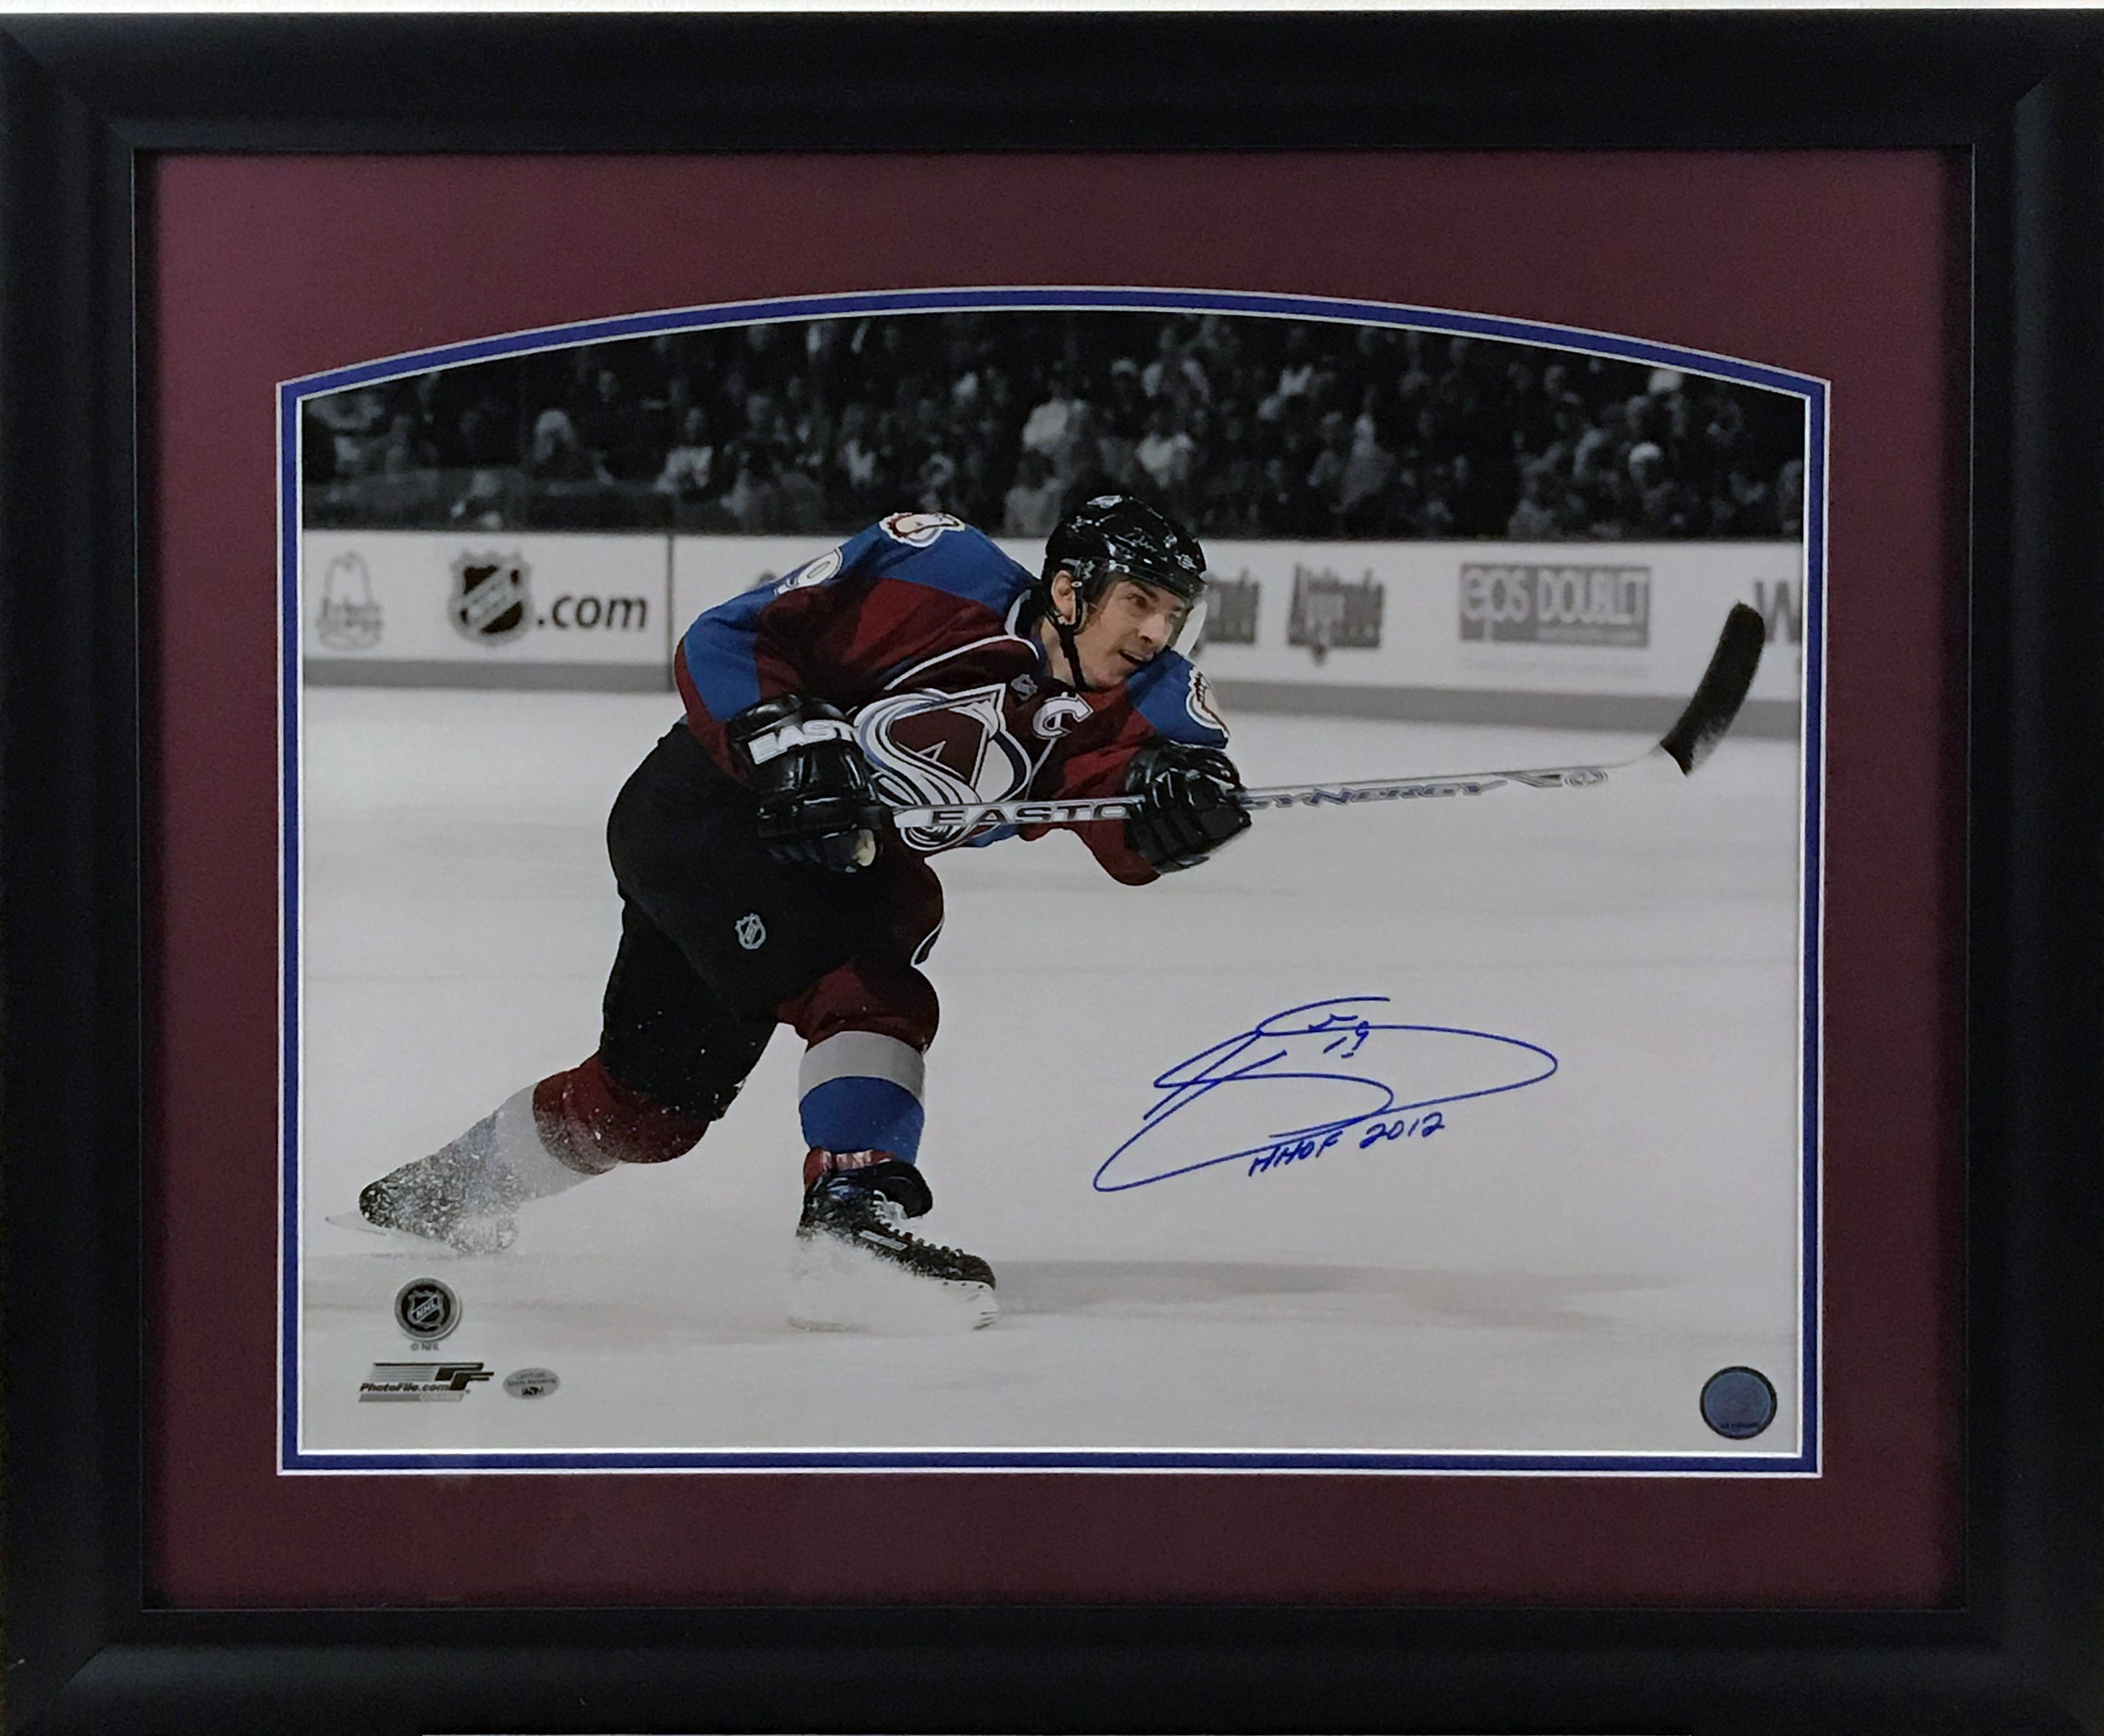 Joe Sakic Signed and Framed 16x20 Photo with Inscription